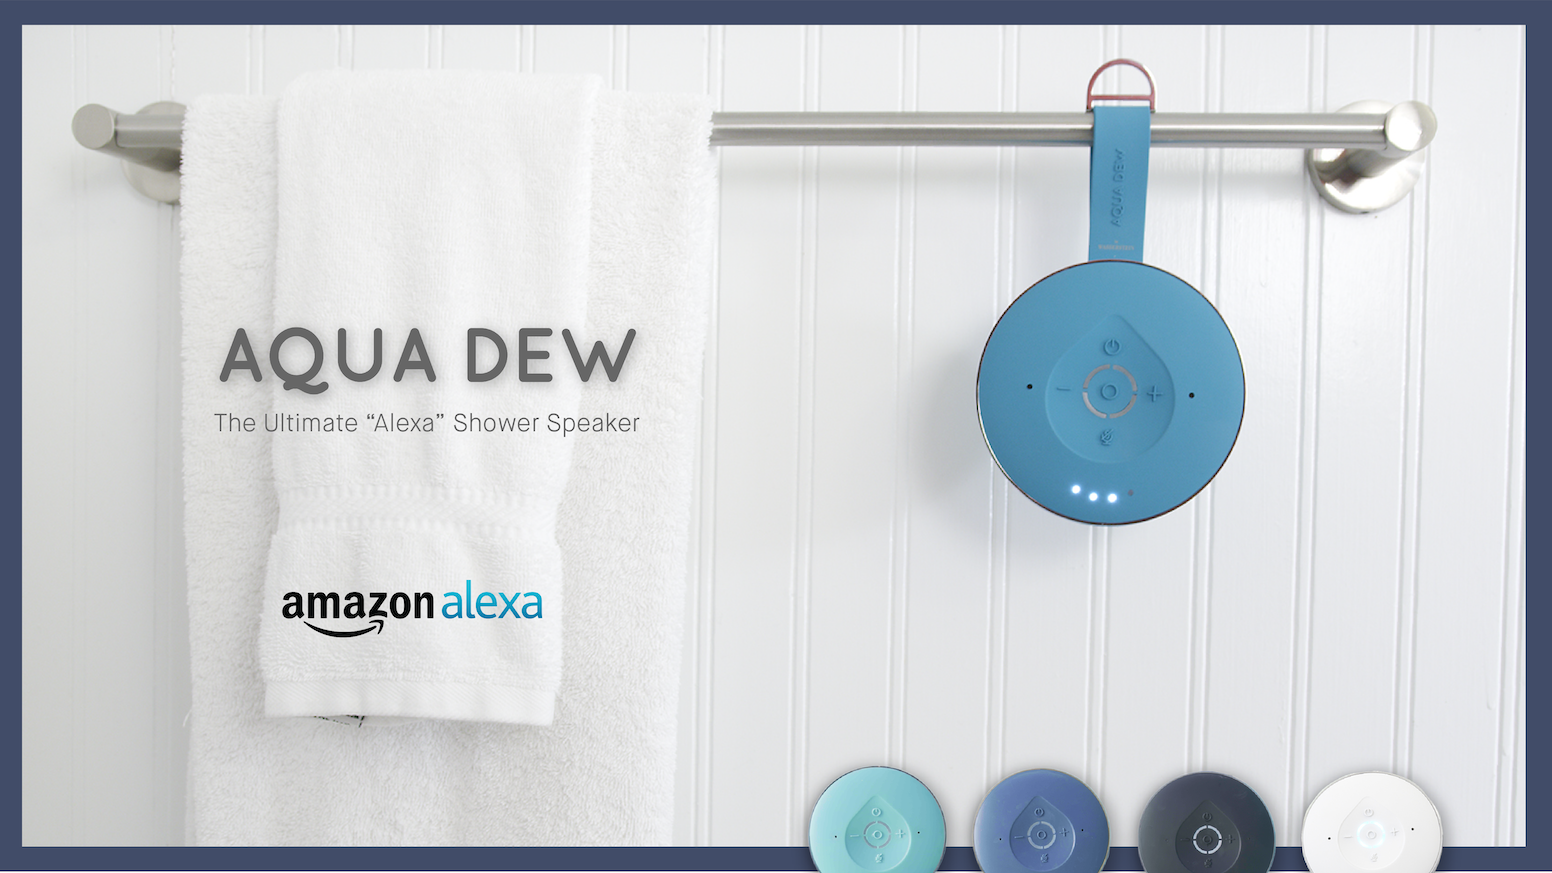 A powerful, splashproof speaker featuring Alexa voice technology for your shower and home.